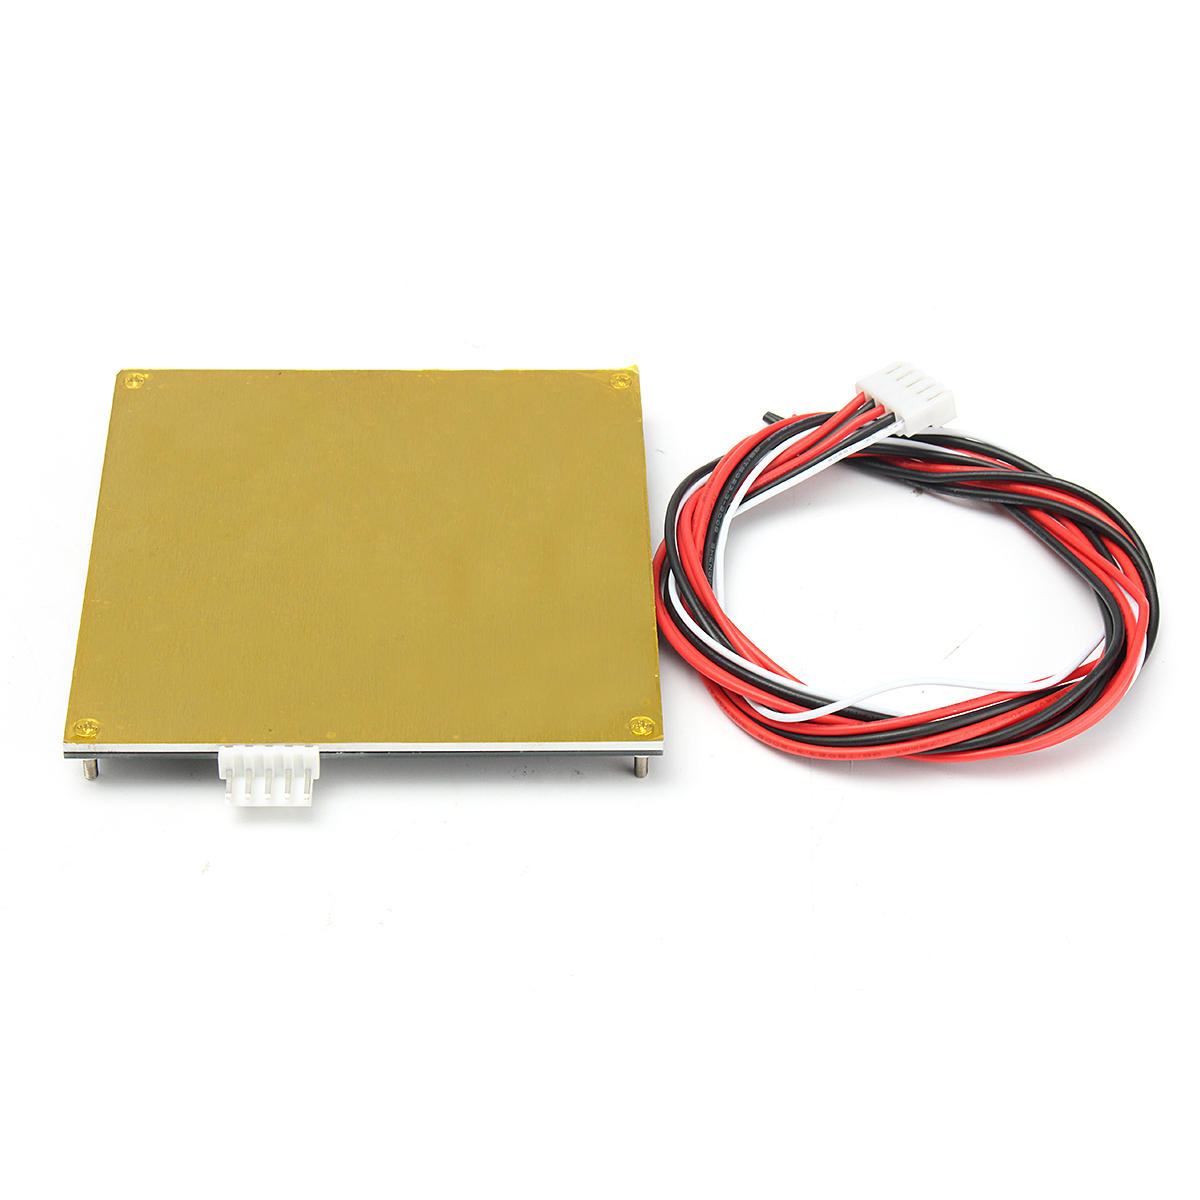 Electronic Components & Supplies Reprap Heatbed Heat Bed Pcb Mk2a Hot Plate For 3d Printer Prusa Mendel Sales Of Quality Assurance